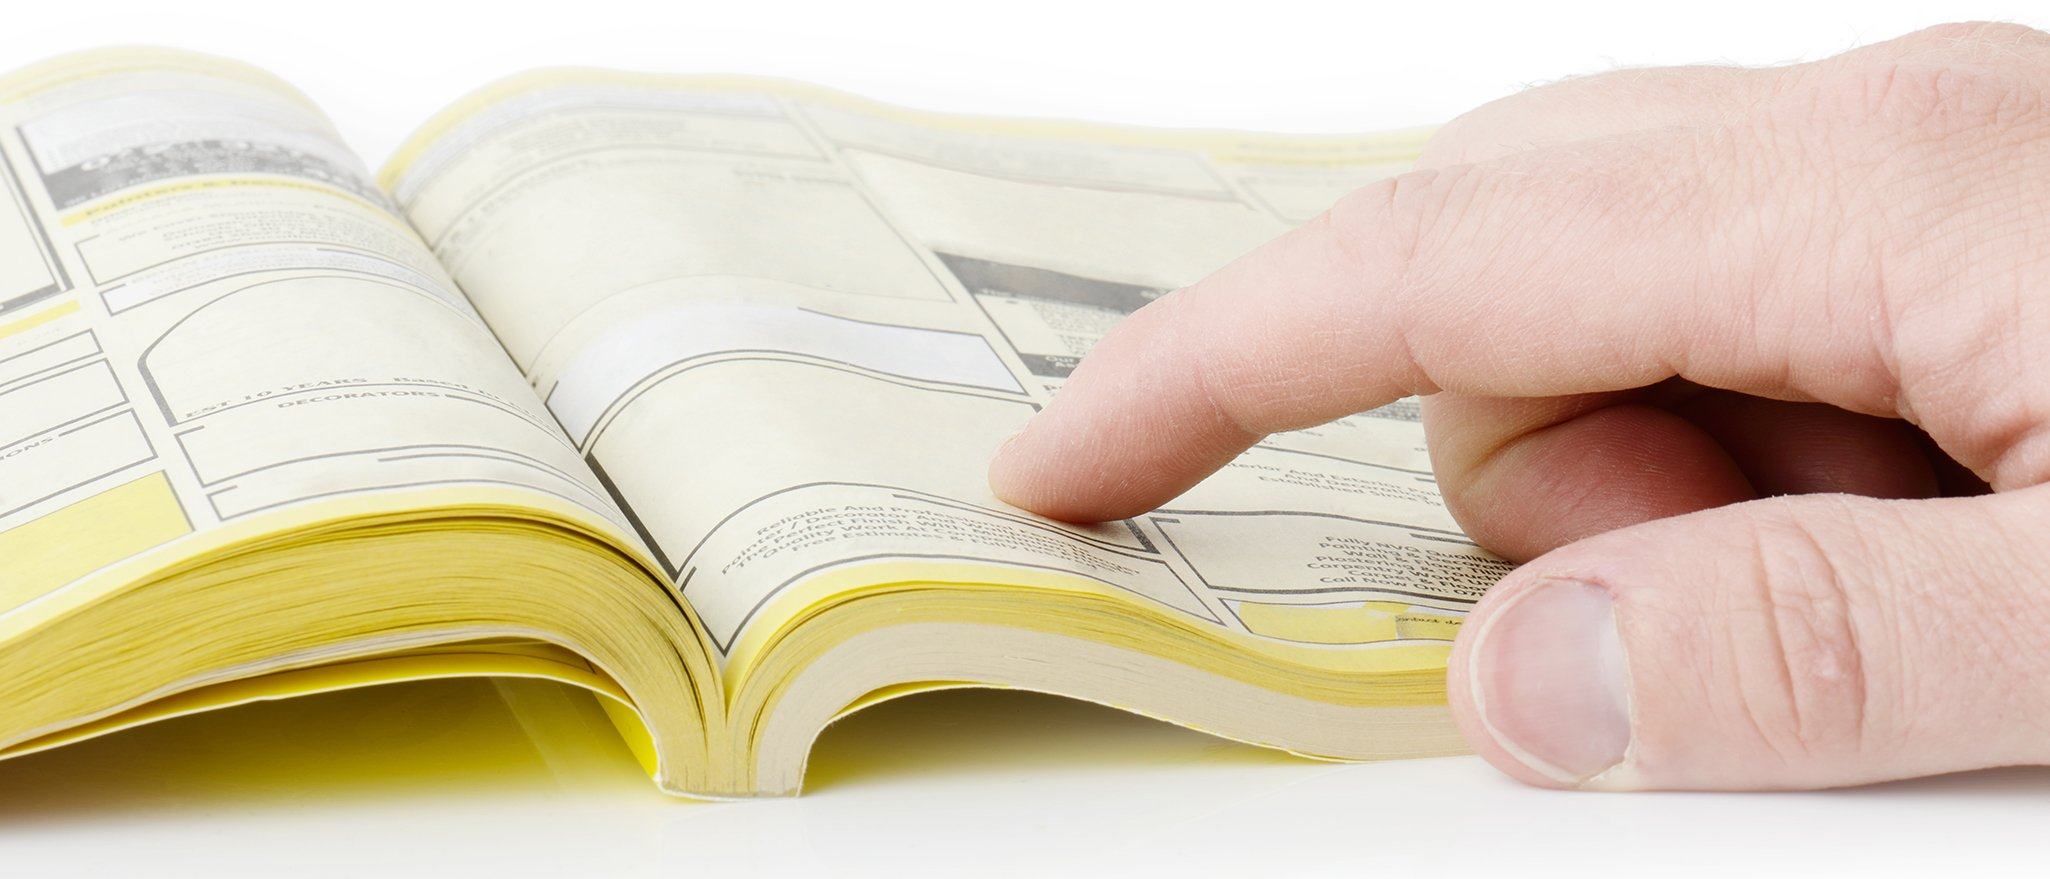 Customer-finds-number-in-yellow-pages-with-hand